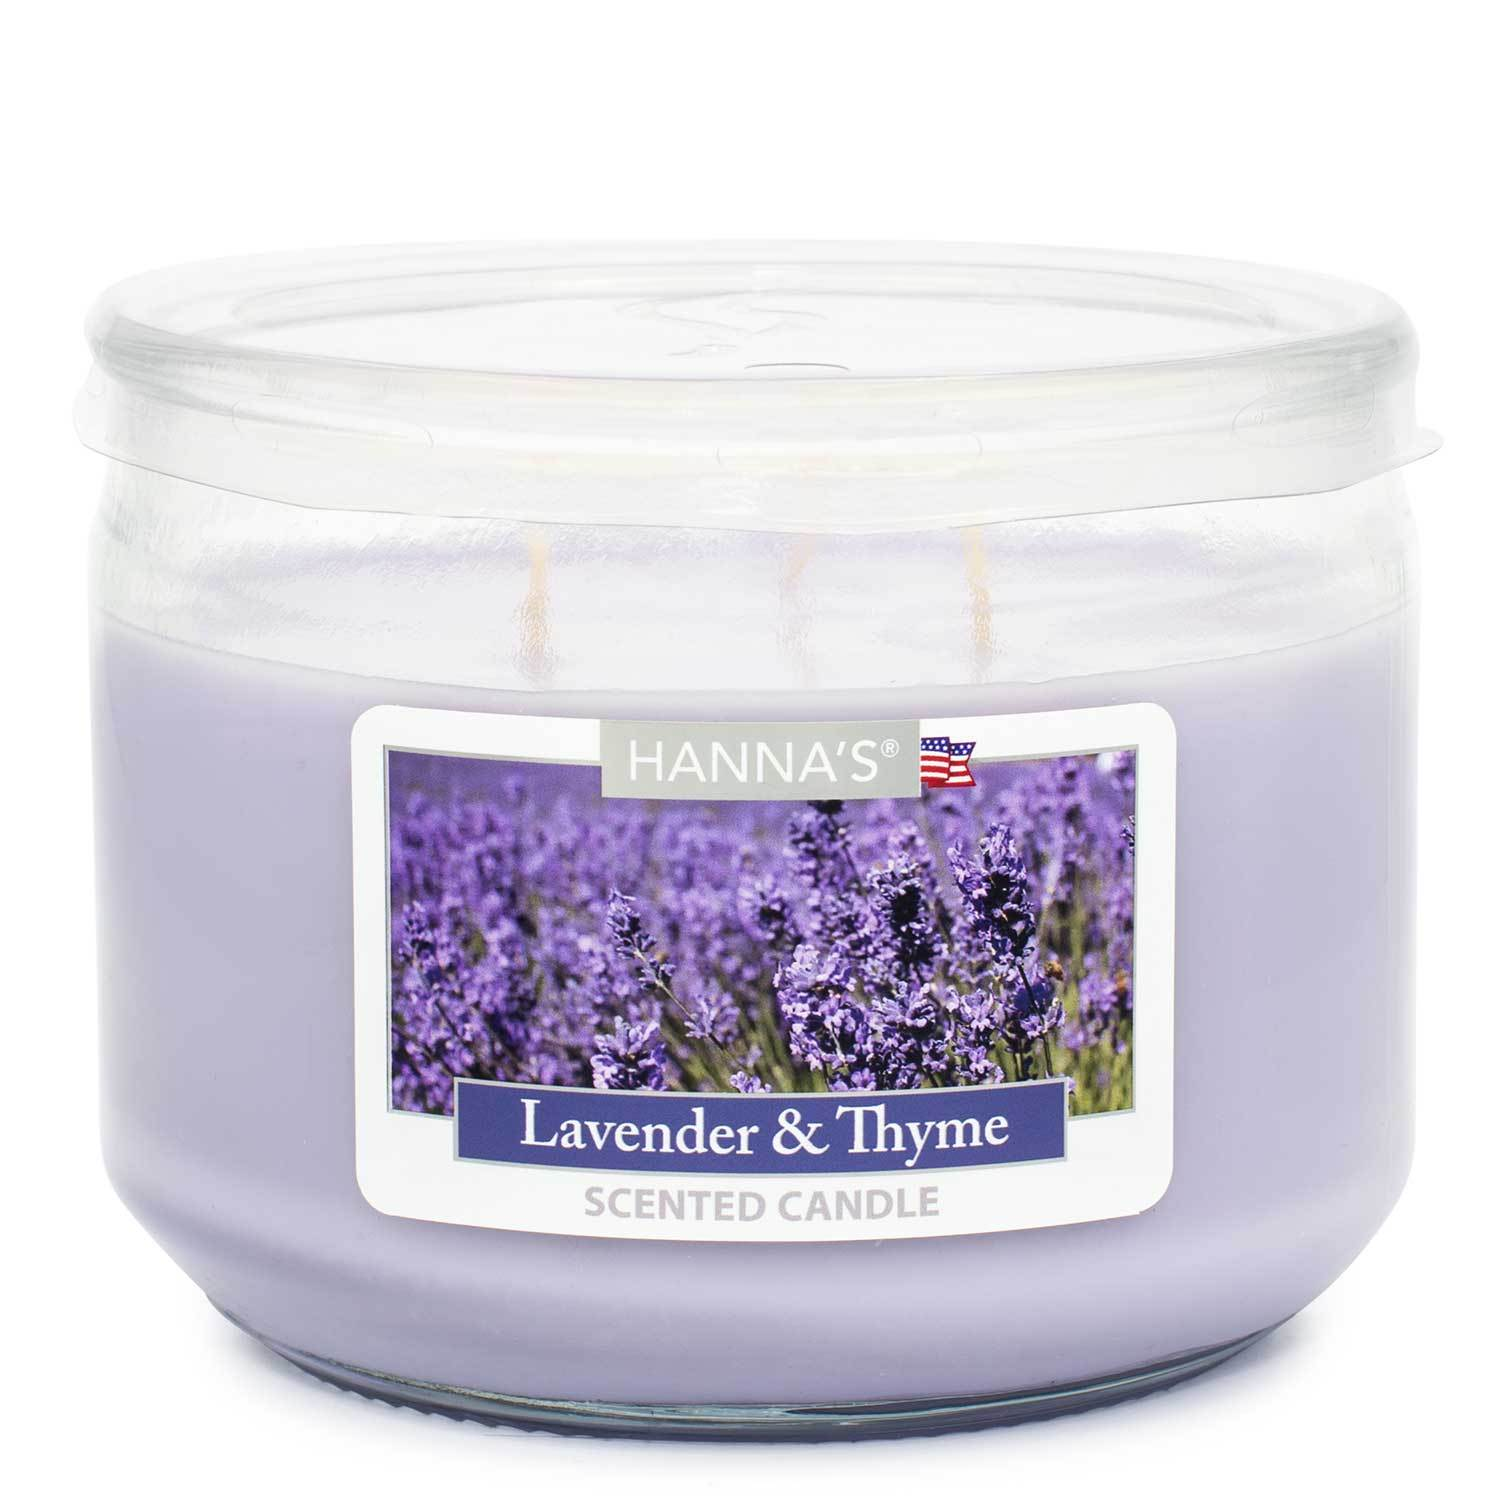 Lavender Thyme Scented 3 wick Candle Candles Candlemart.com $ 7.99